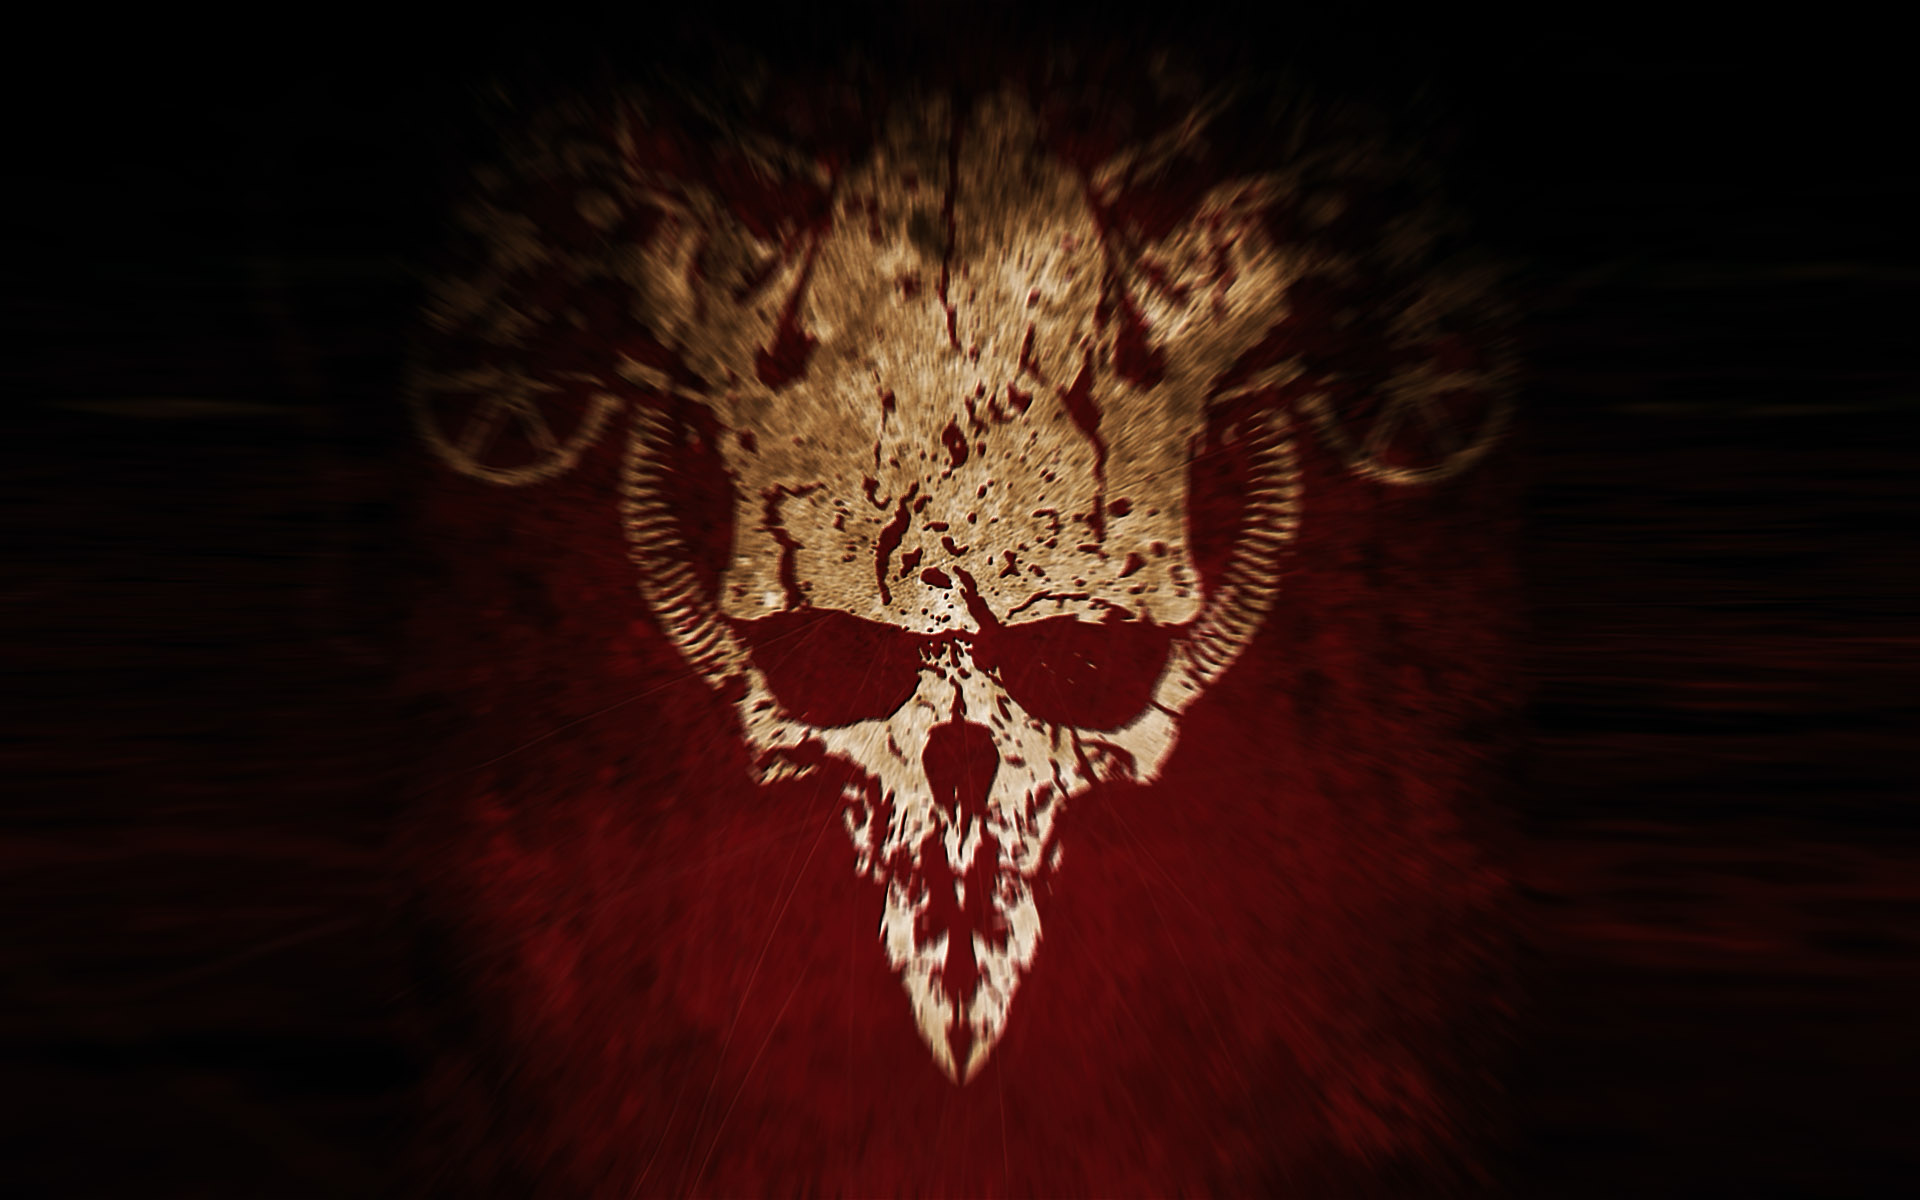 Collection of Devil Wallpapers Hd on HDWallpapers